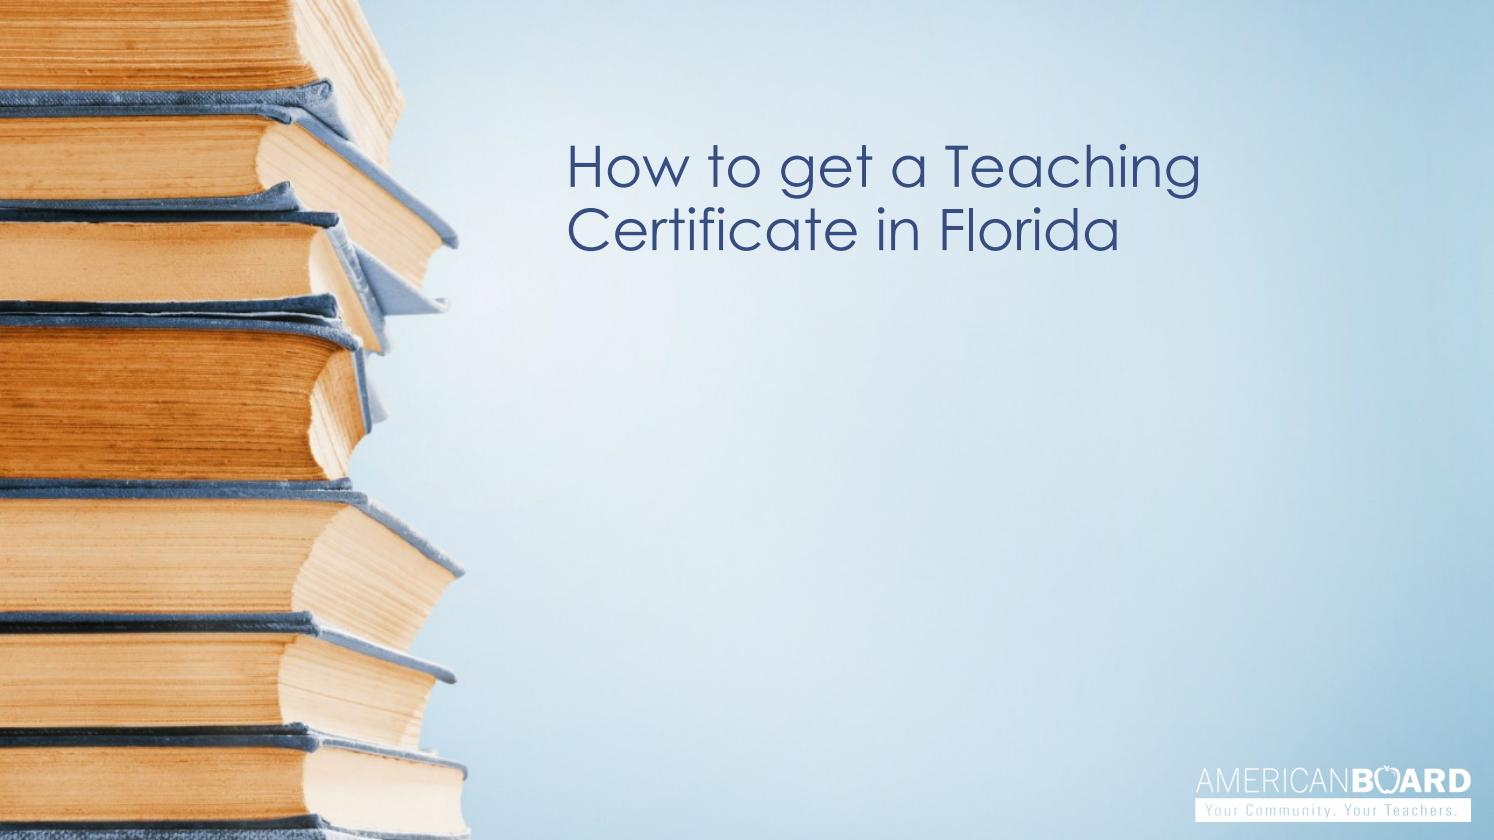 How To Get A Teaching Certificate In Florida By Matt Smith Issuu